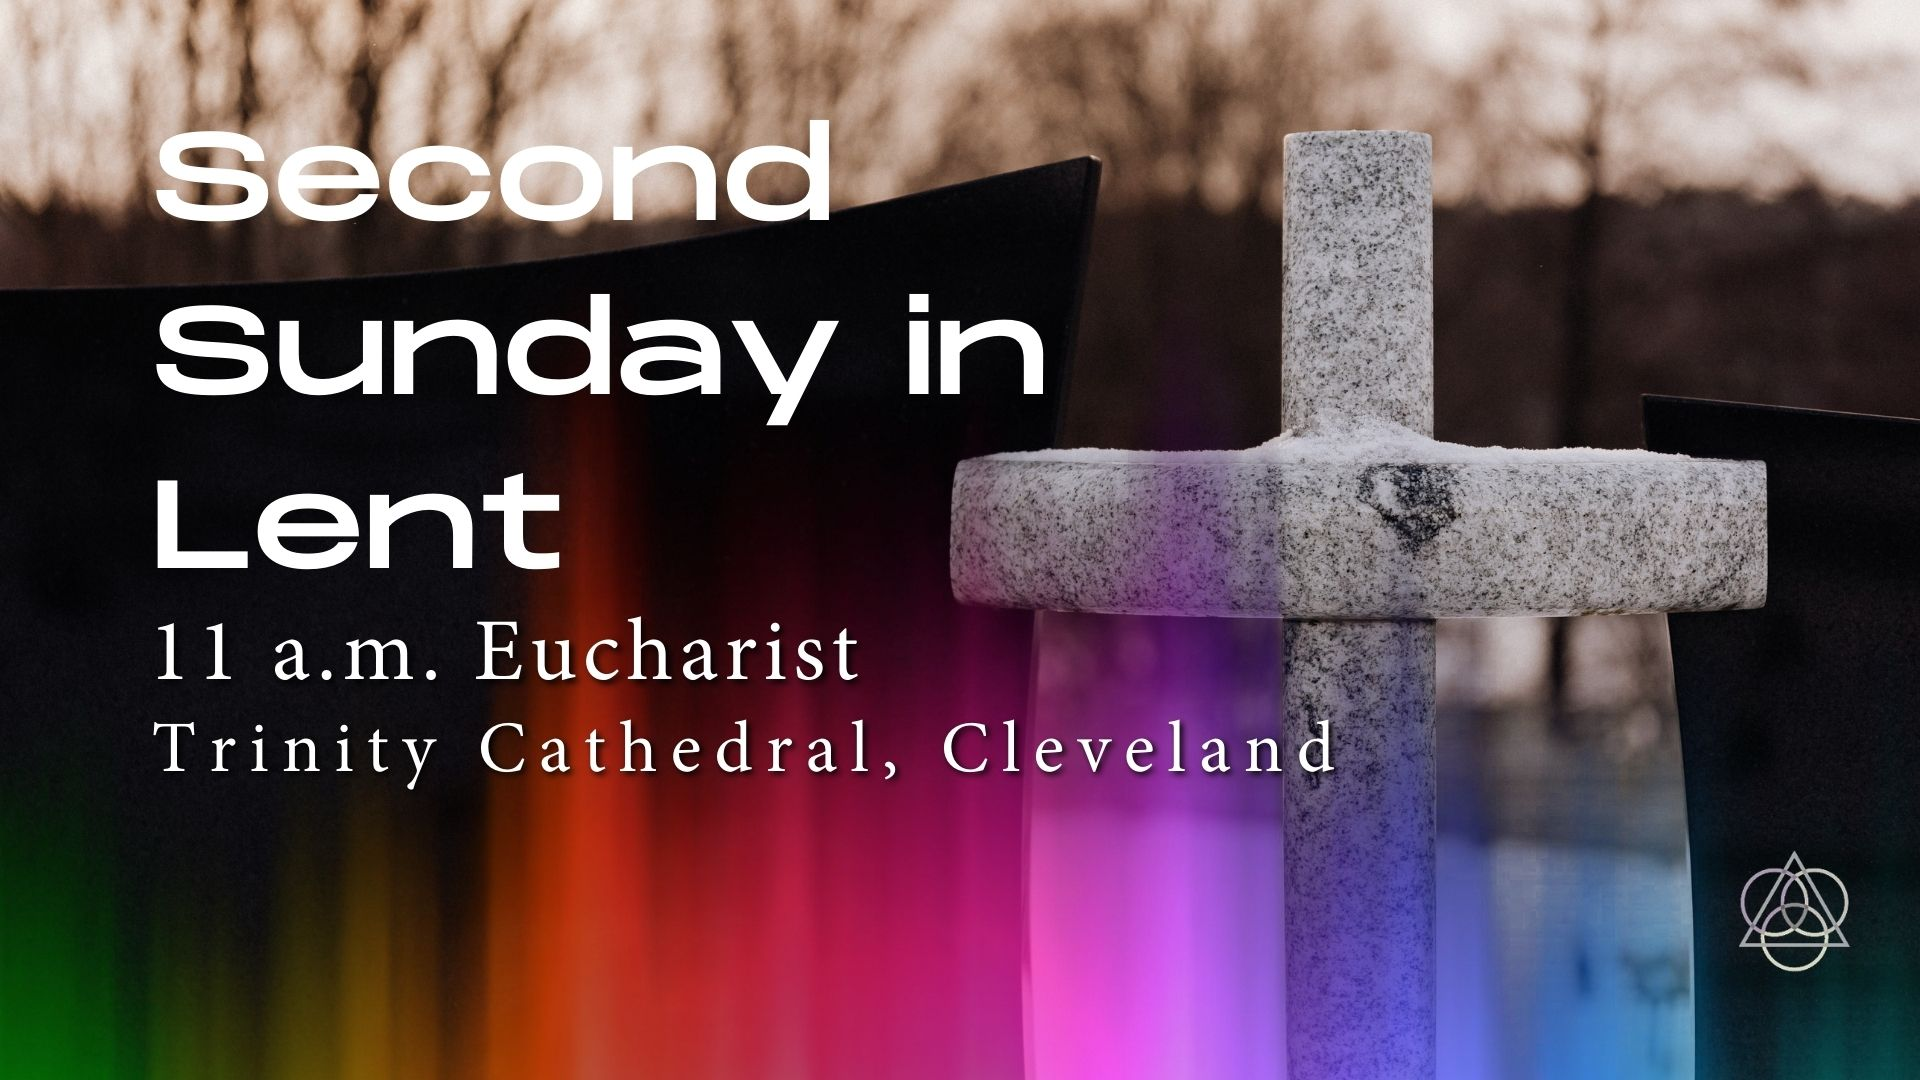 Holy Eucharist: The Second Sunday in Lent—February 28, 2021